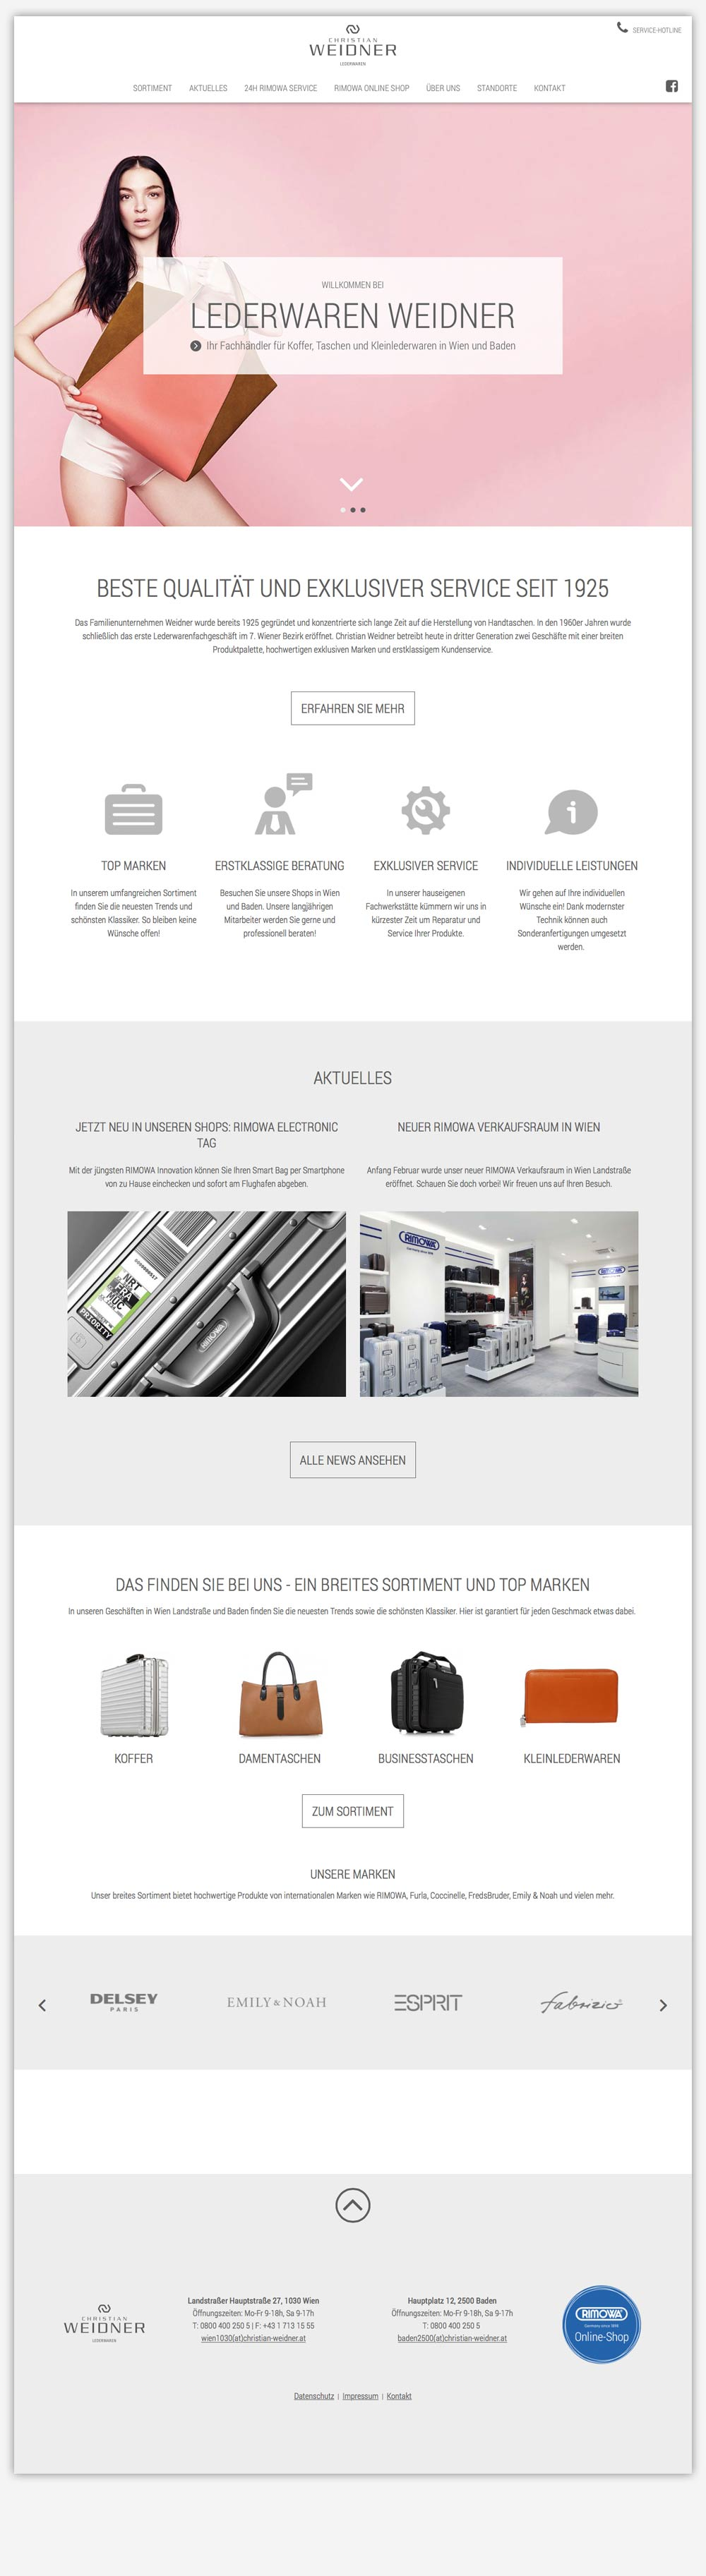 Lederwaren Weidner Website C21 new media design Wien Online Agentur Webagentur Digitalagentur